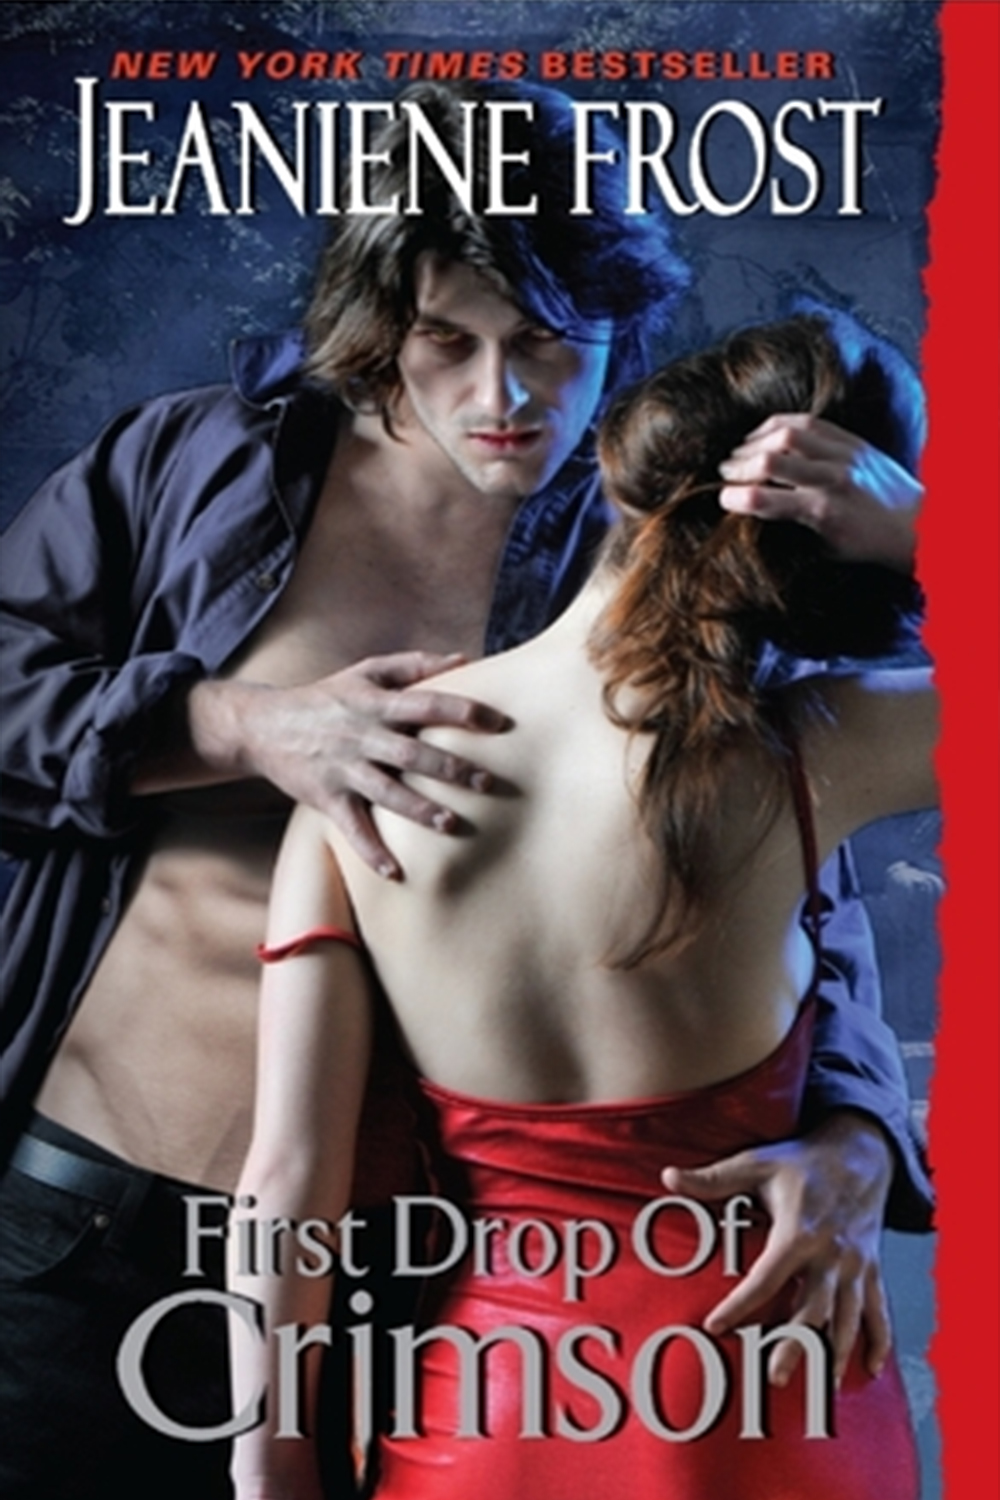 S1 E10 First Drop of Crimson by Jeaniene Frost